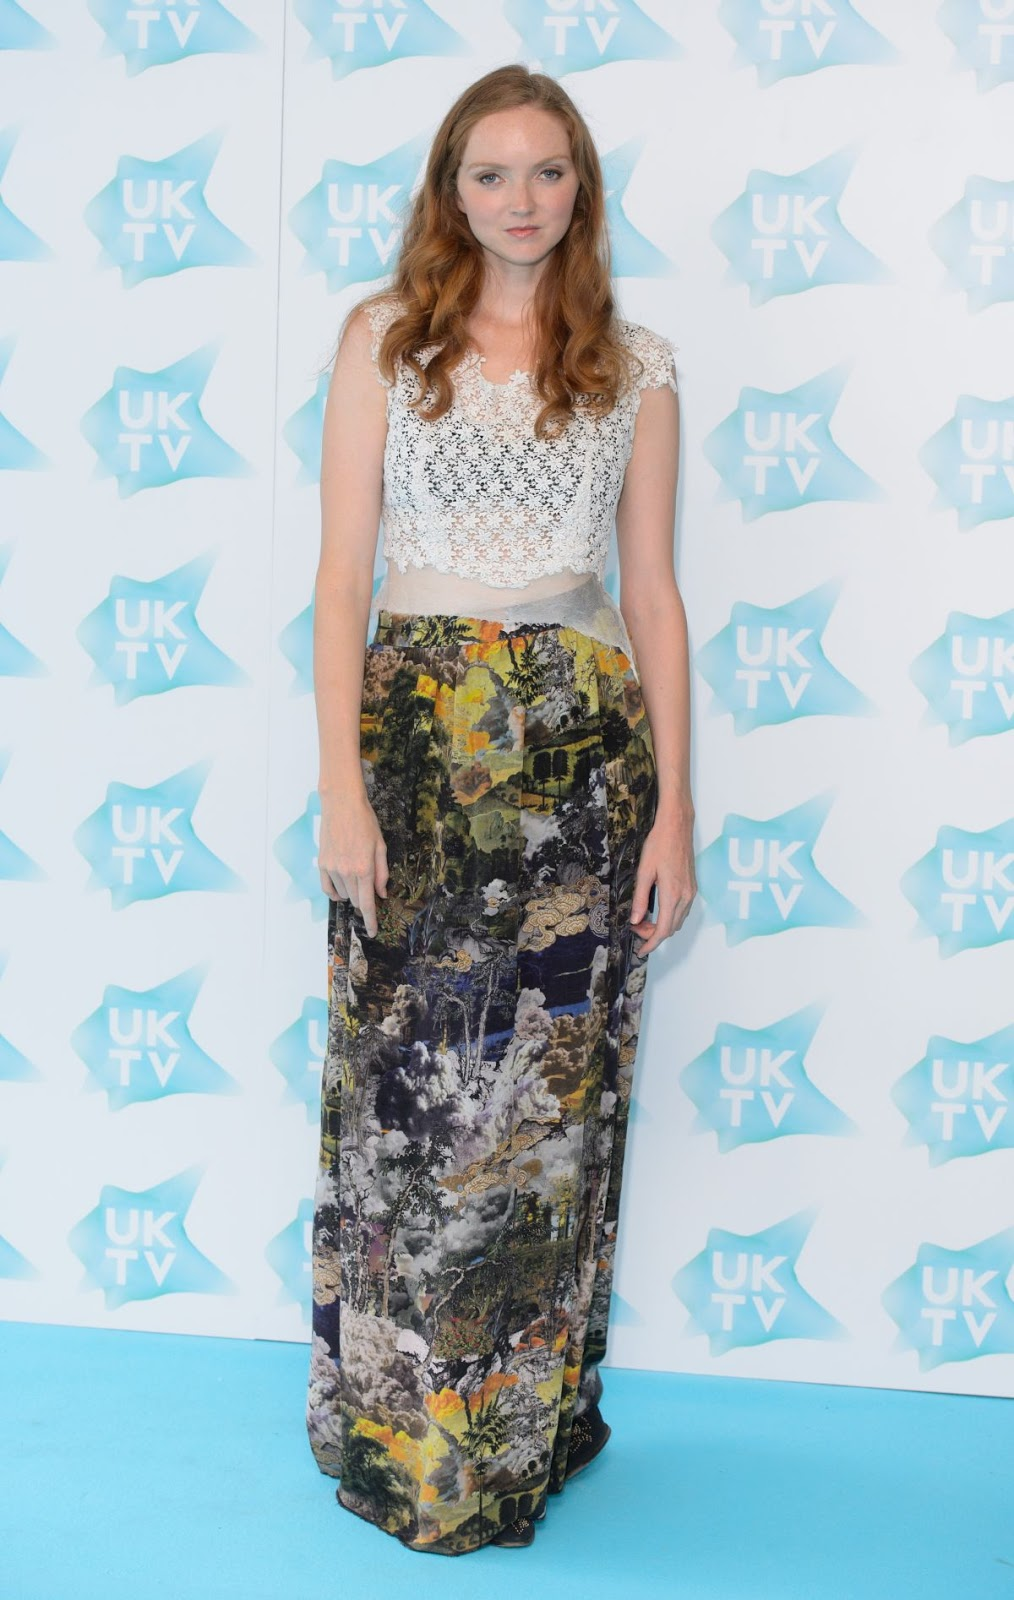 HQ Photos of Lily Cole At UKTV Live New Season Launch In London